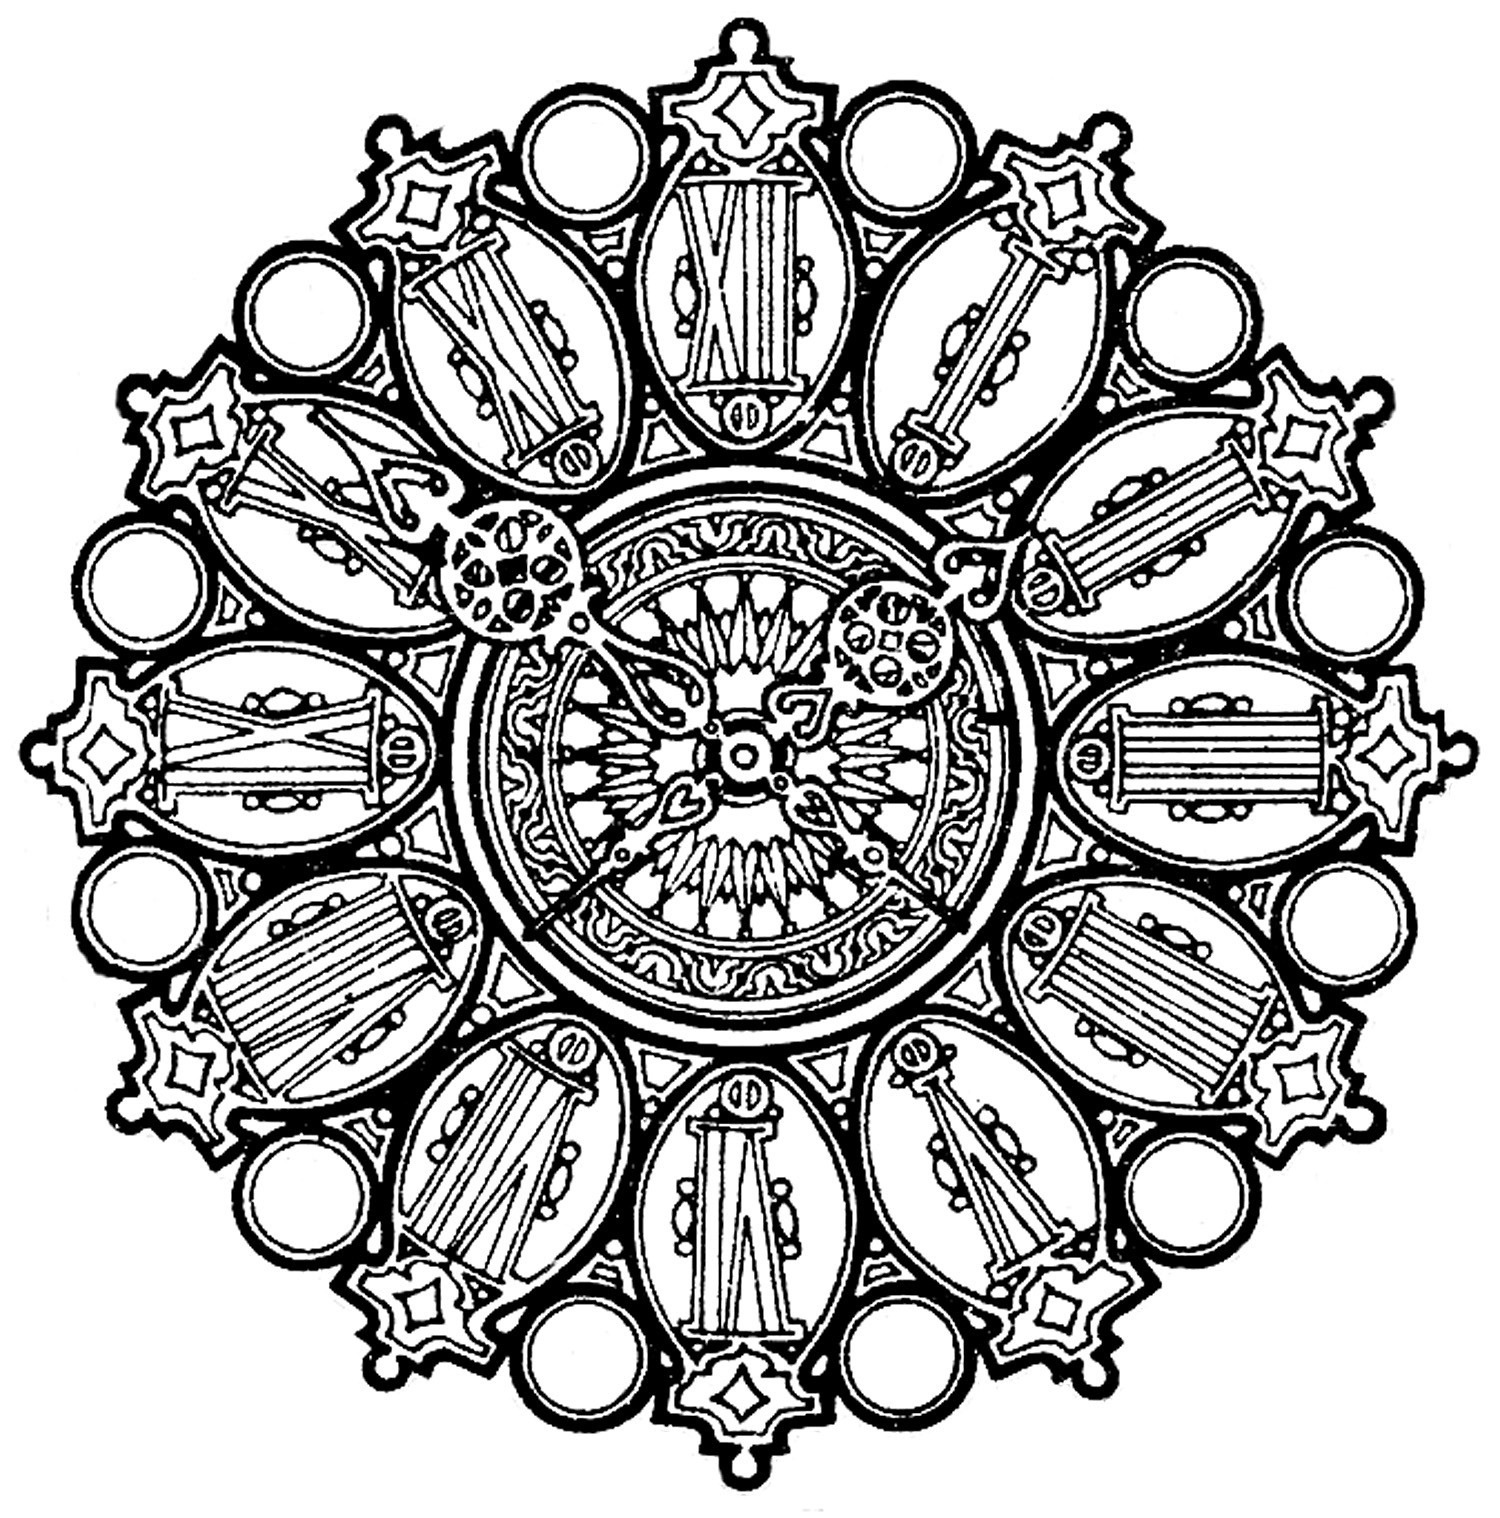 Ornate Clock Face Image